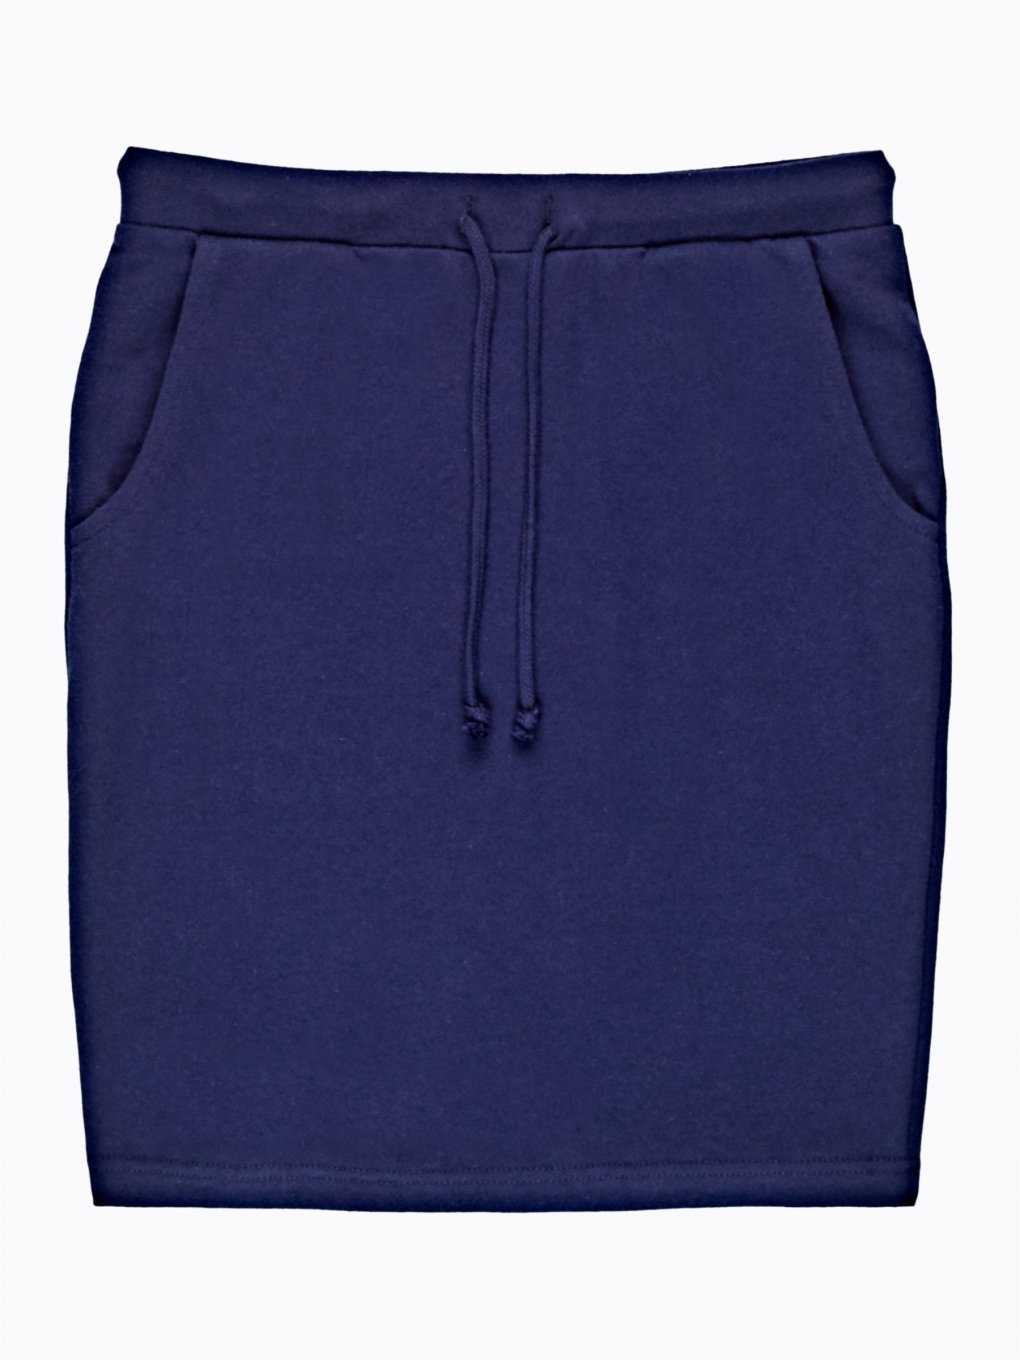 Basic skirt with pockets